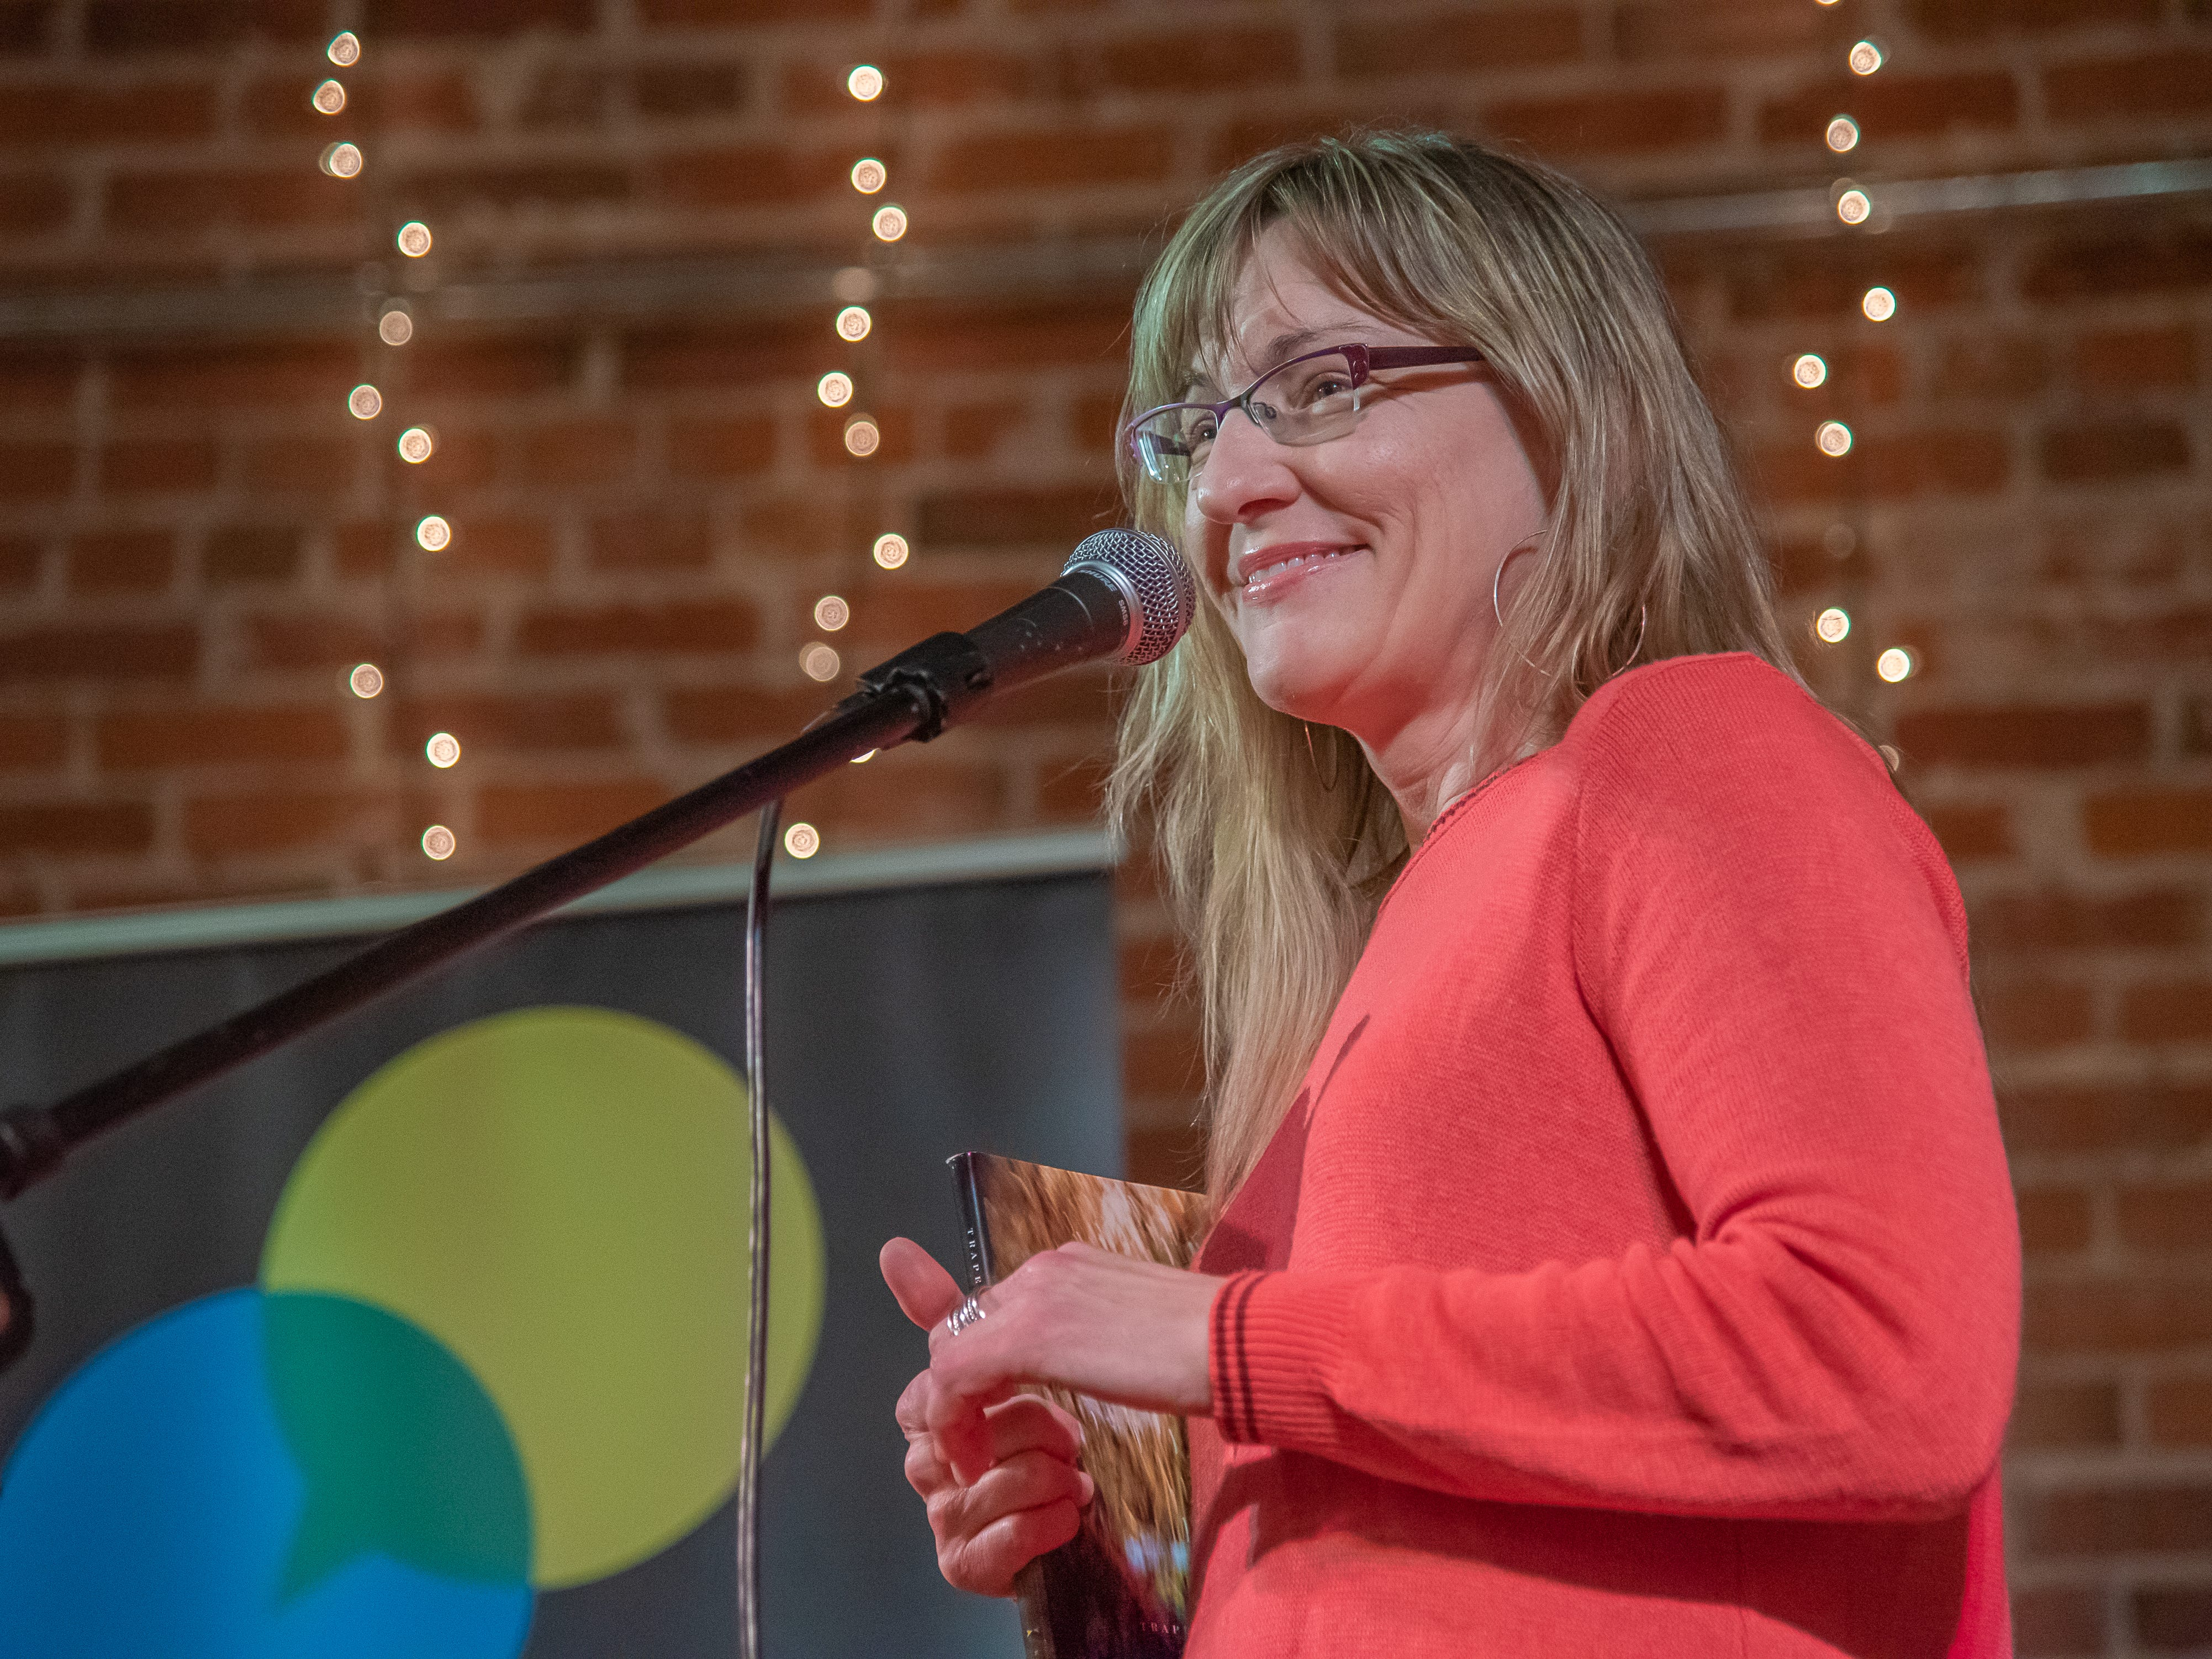 Storyteller Marj Hahne speaks of love and heartbreak during the Coloradoan Storytellers Project at Everyday Joe's Coffee House on Wednesday, February 20, 2019, in Fort Collins, Colo.